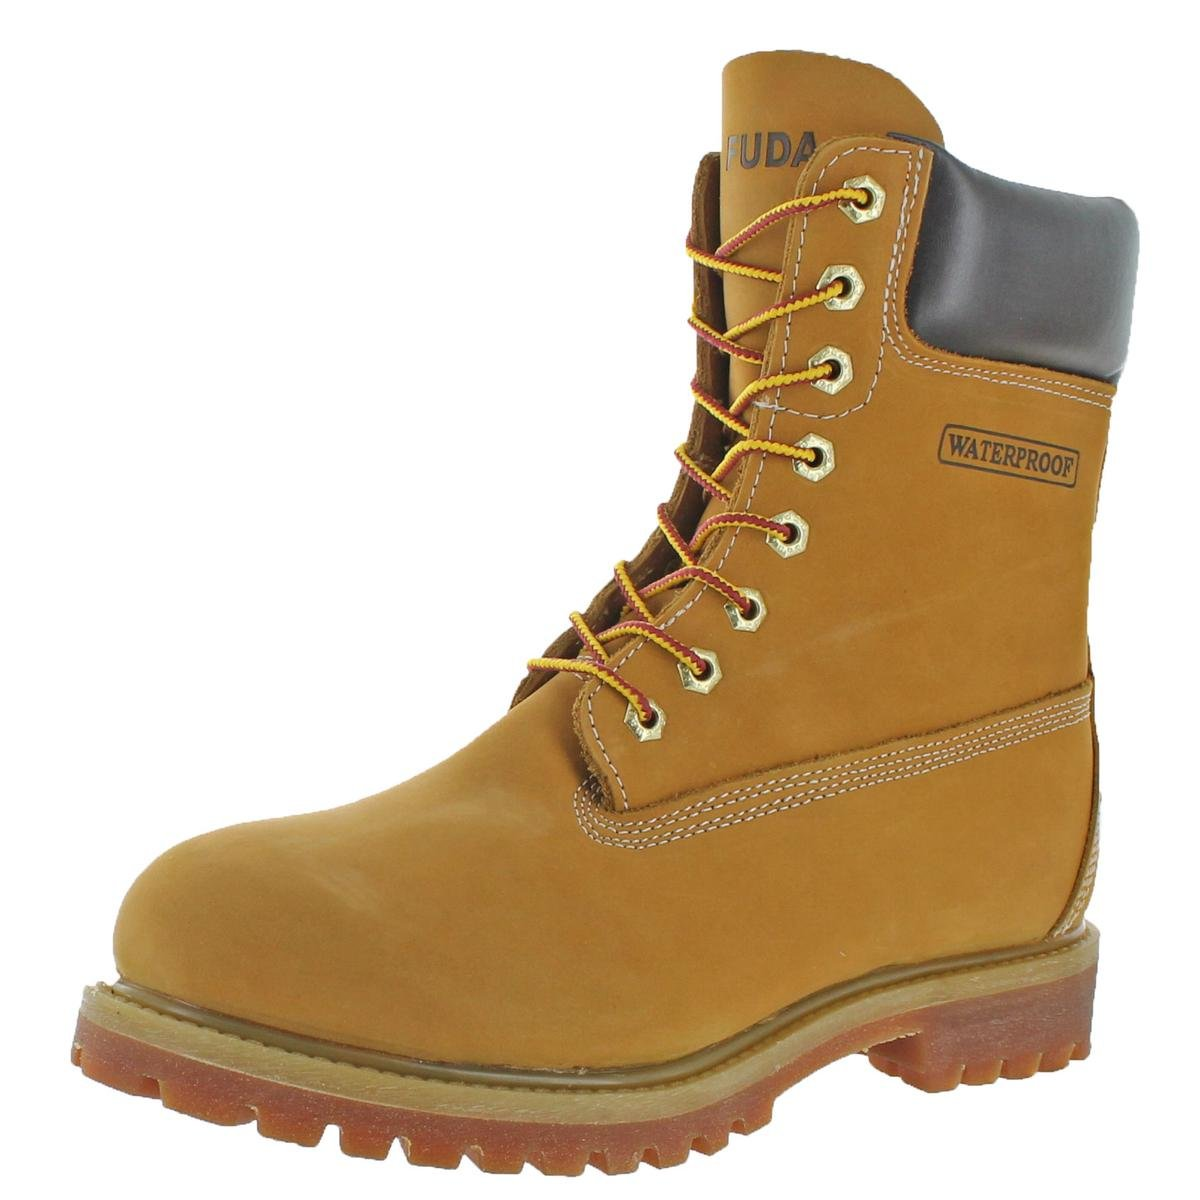 Men's 8'' Waterproof Nubuck Leather Gum Sole Work Boots Shoes Wheat Size 13